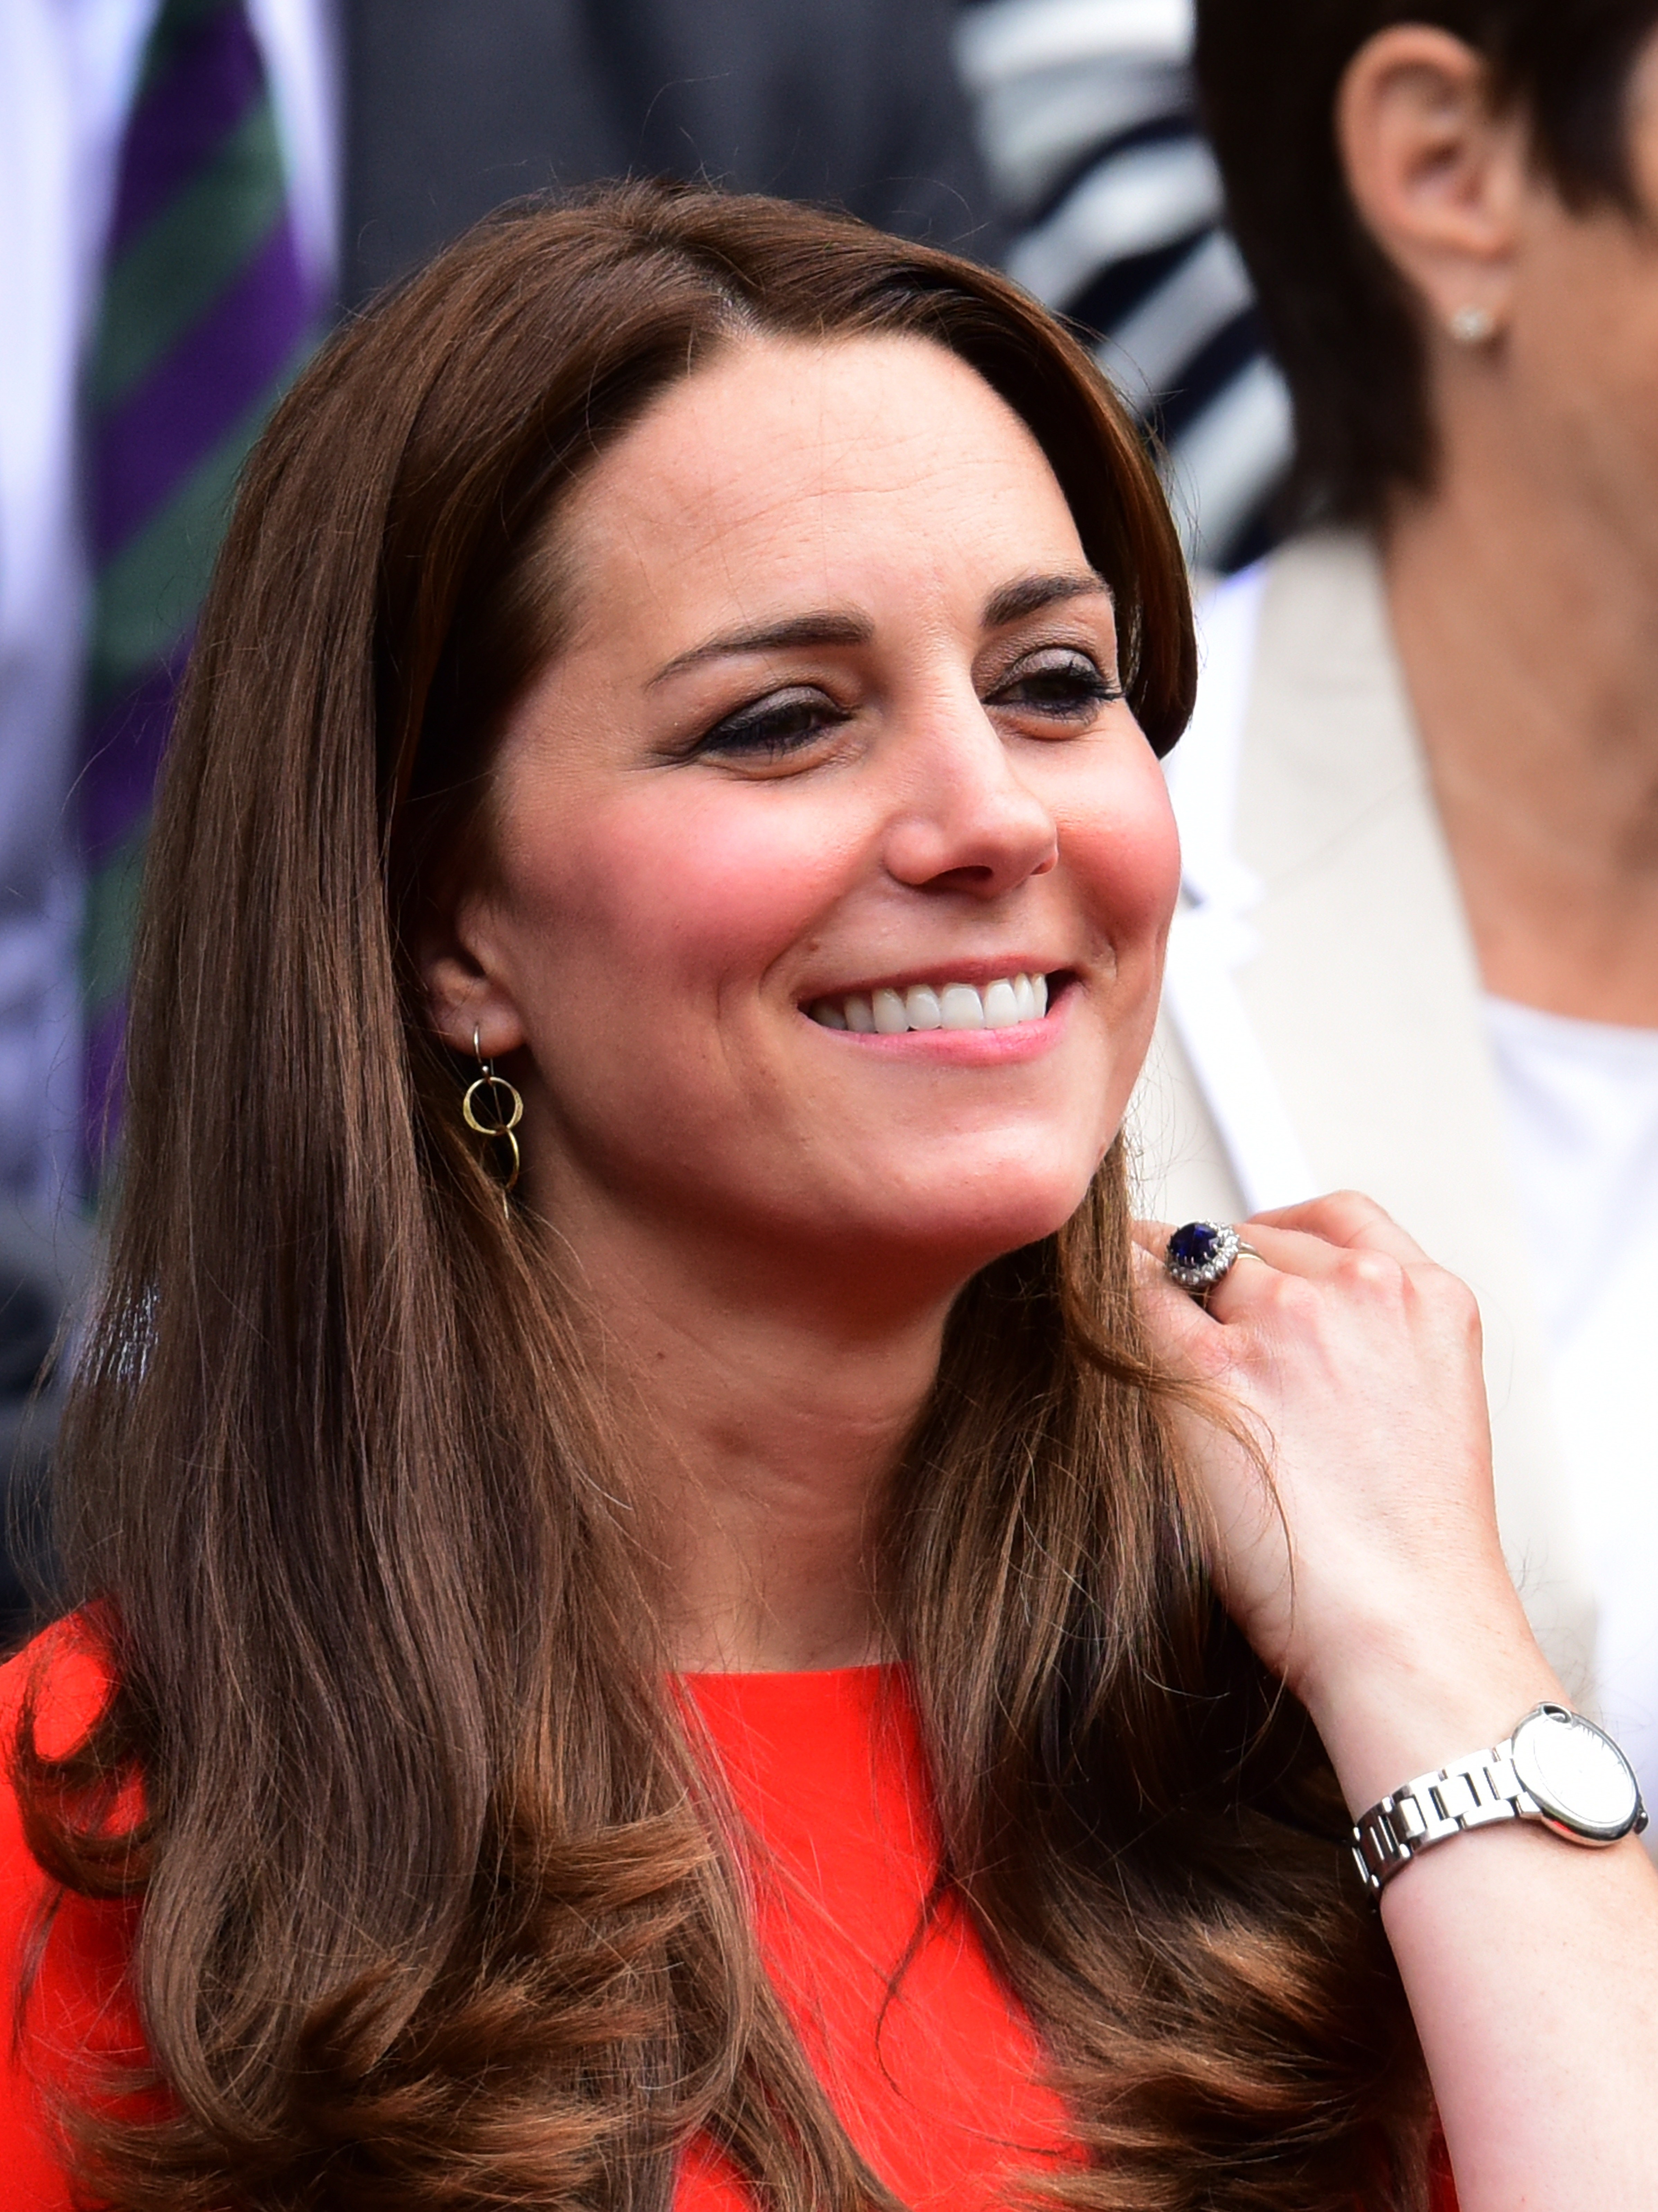 Kate Middleton Makes Drastic Hair Change, Photographed With Bangs